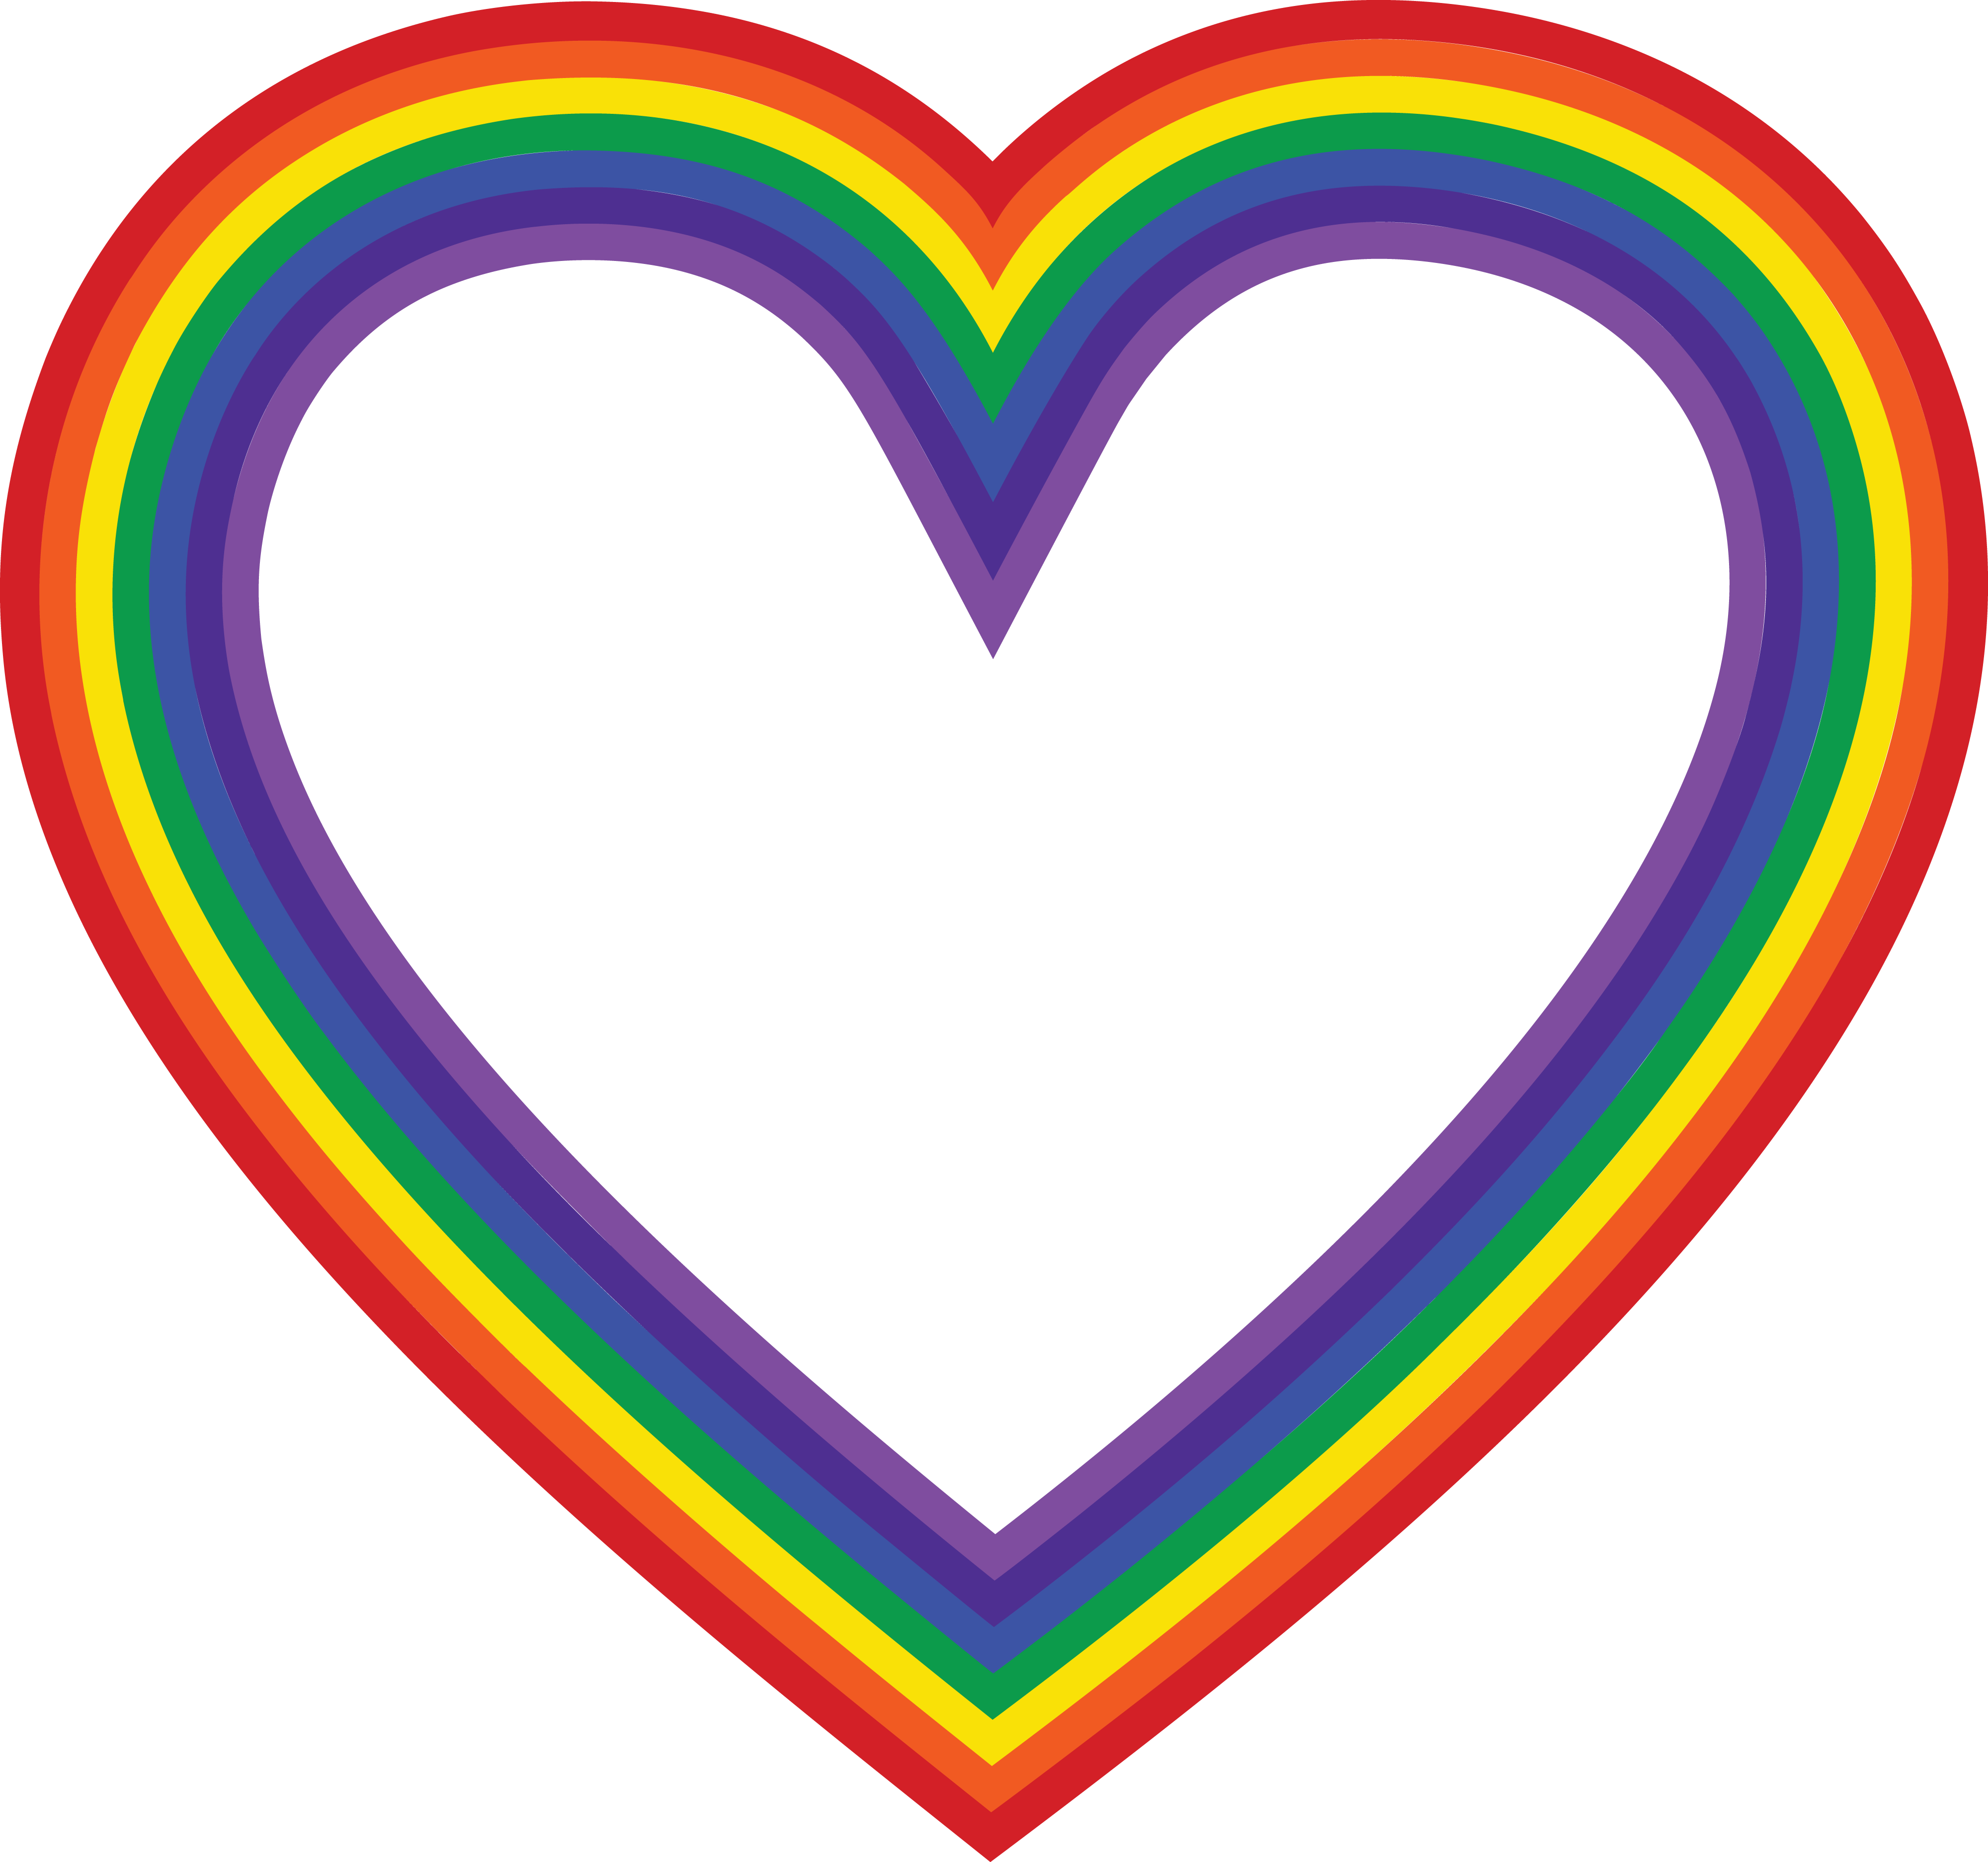 Free clipart hands holding heart jpg royalty free library The Rainbow Clipart & The Rainbow Clip Art Images #3680 - OnClipart jpg royalty free library